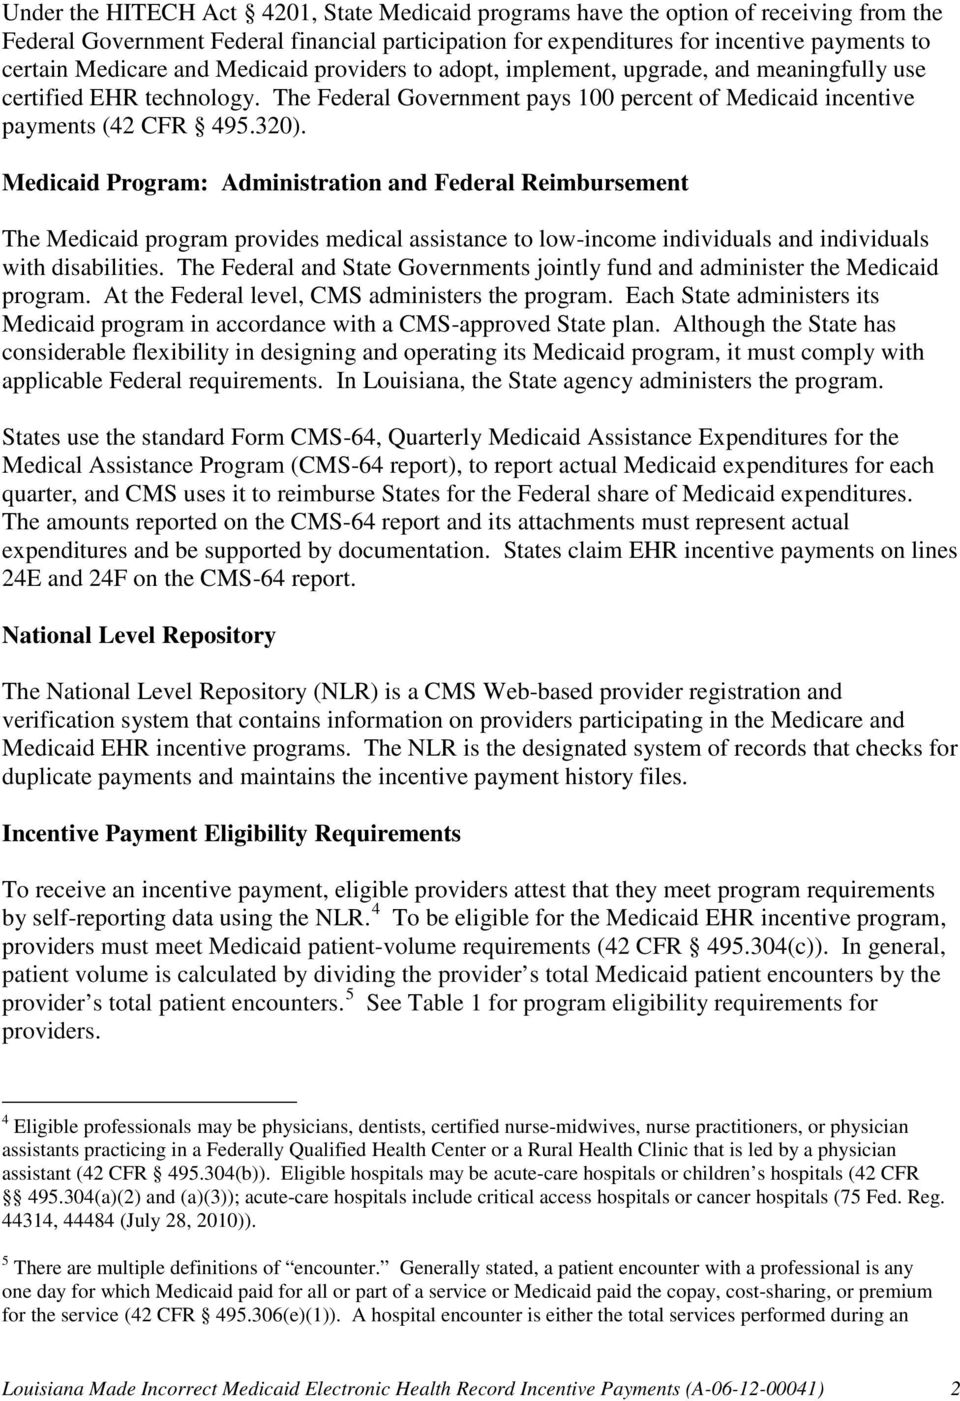 Medicaid Program: Administration and Federal Reimbursement The Medicaid program provides medical assistance to low-income individuals and individuals with disabilities.